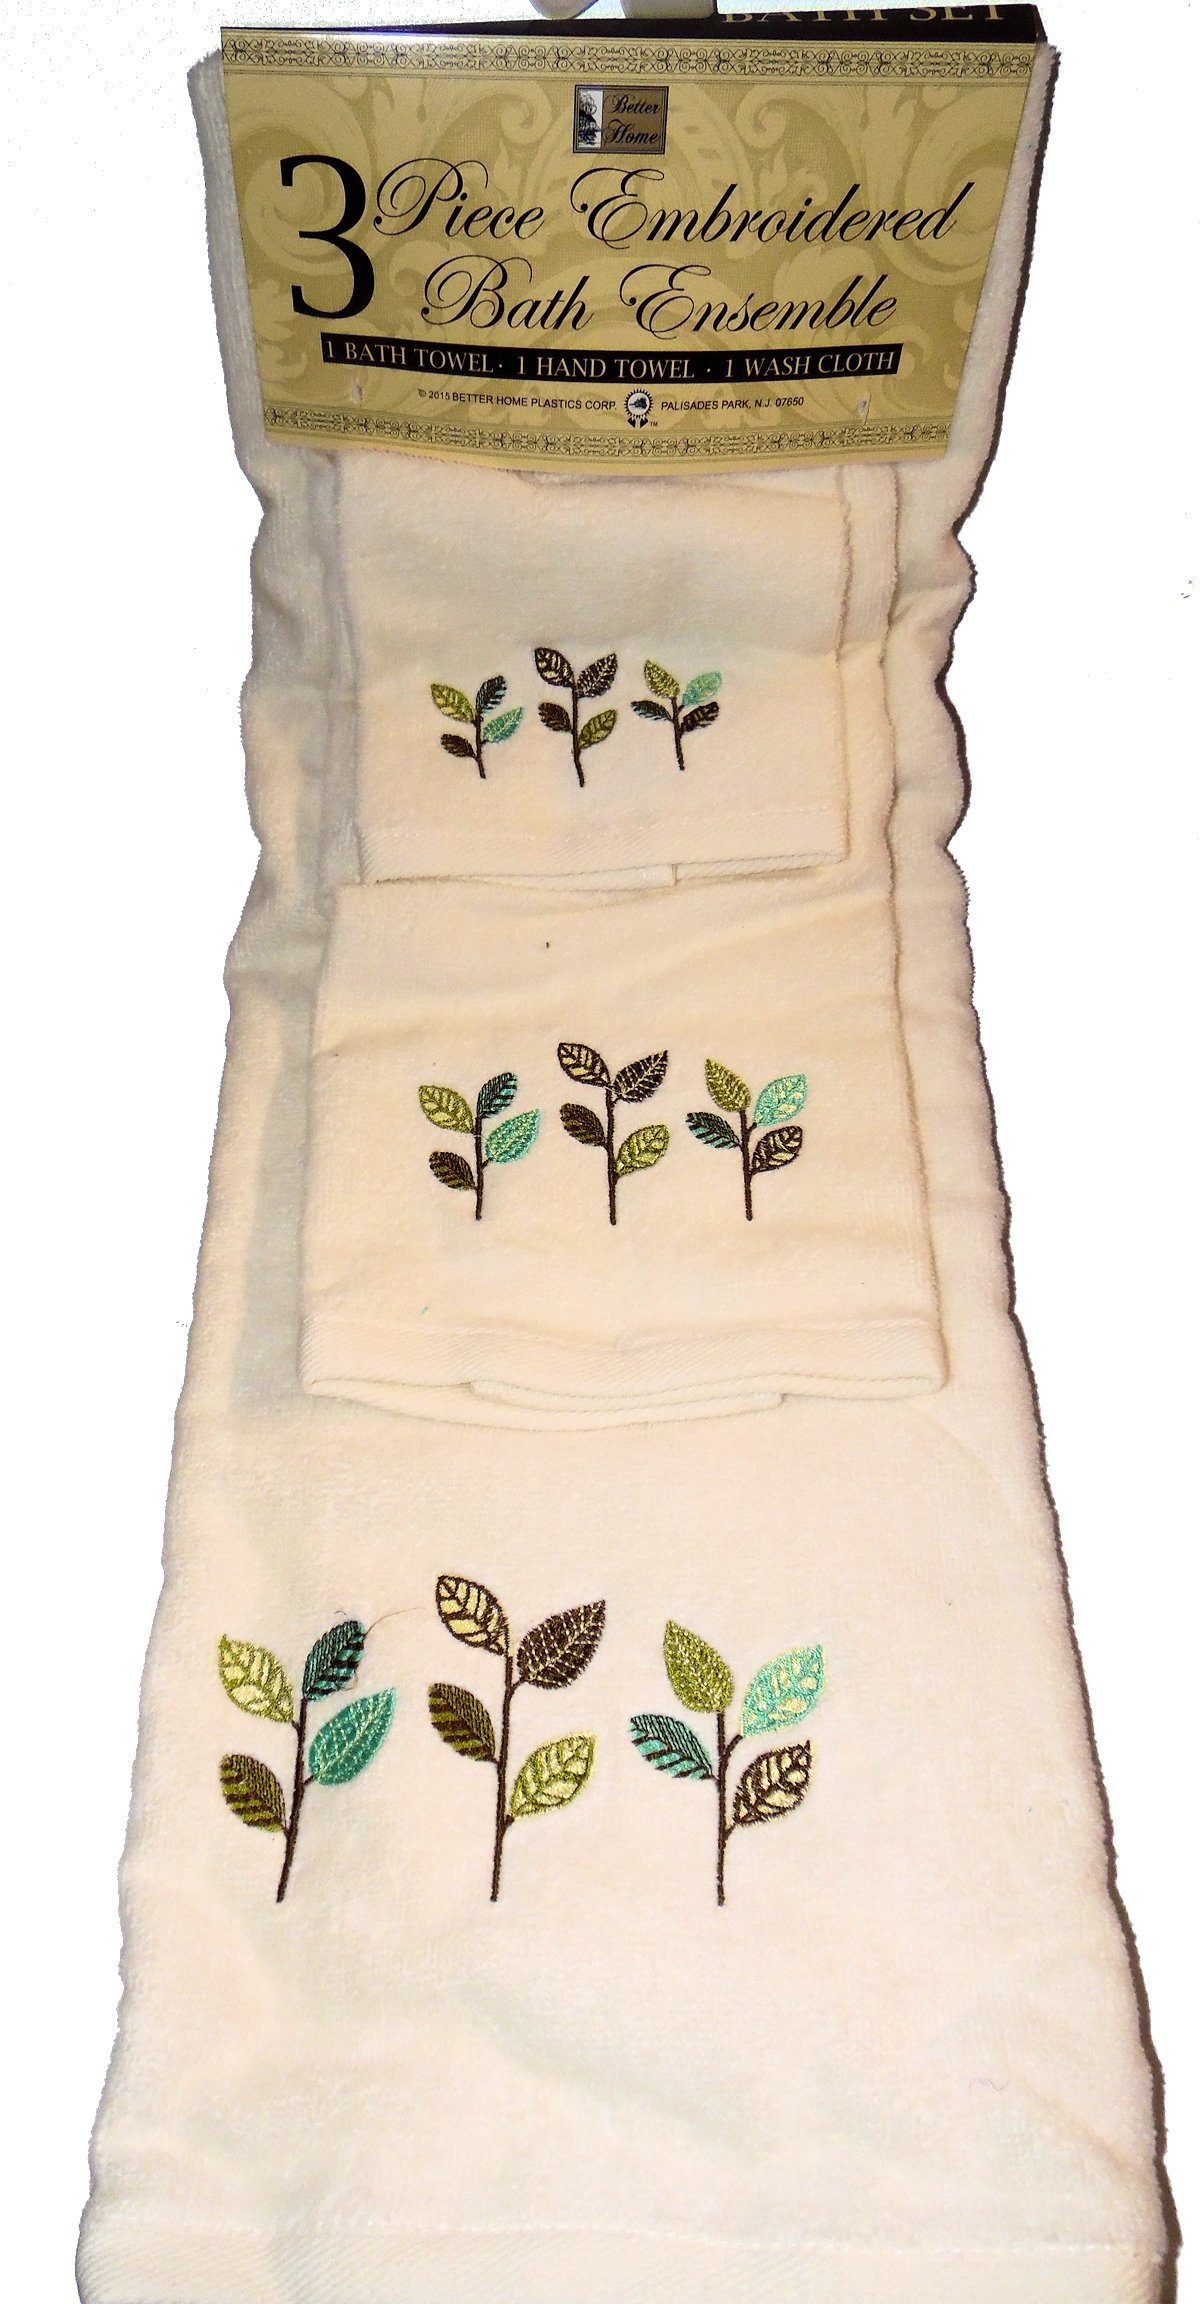 Cream with Colorful Leaves Design - 3 Piece Embroidered Bathroom Towel Set - Bath Towel, Hand Towel, Wash Cloth